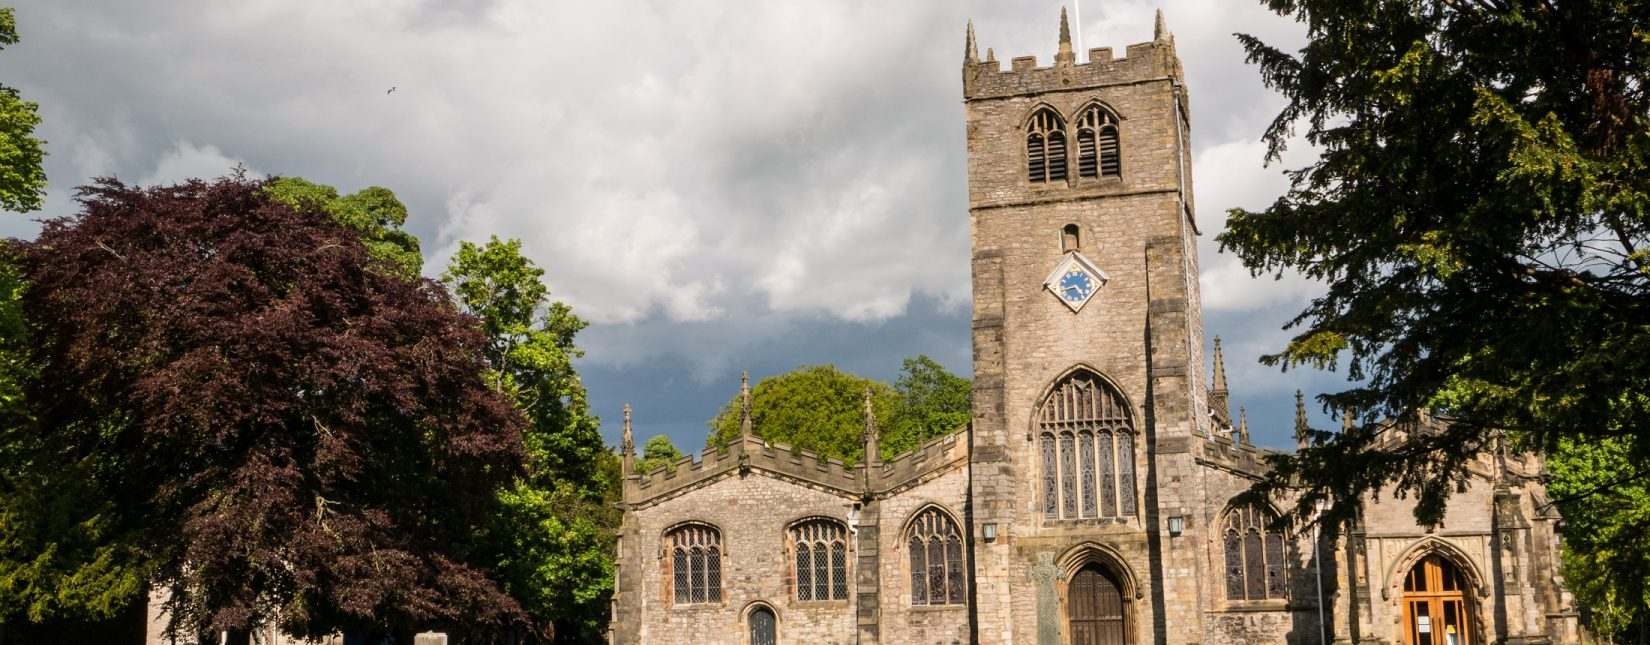 Kendal Parish Church dates from the early 13th century